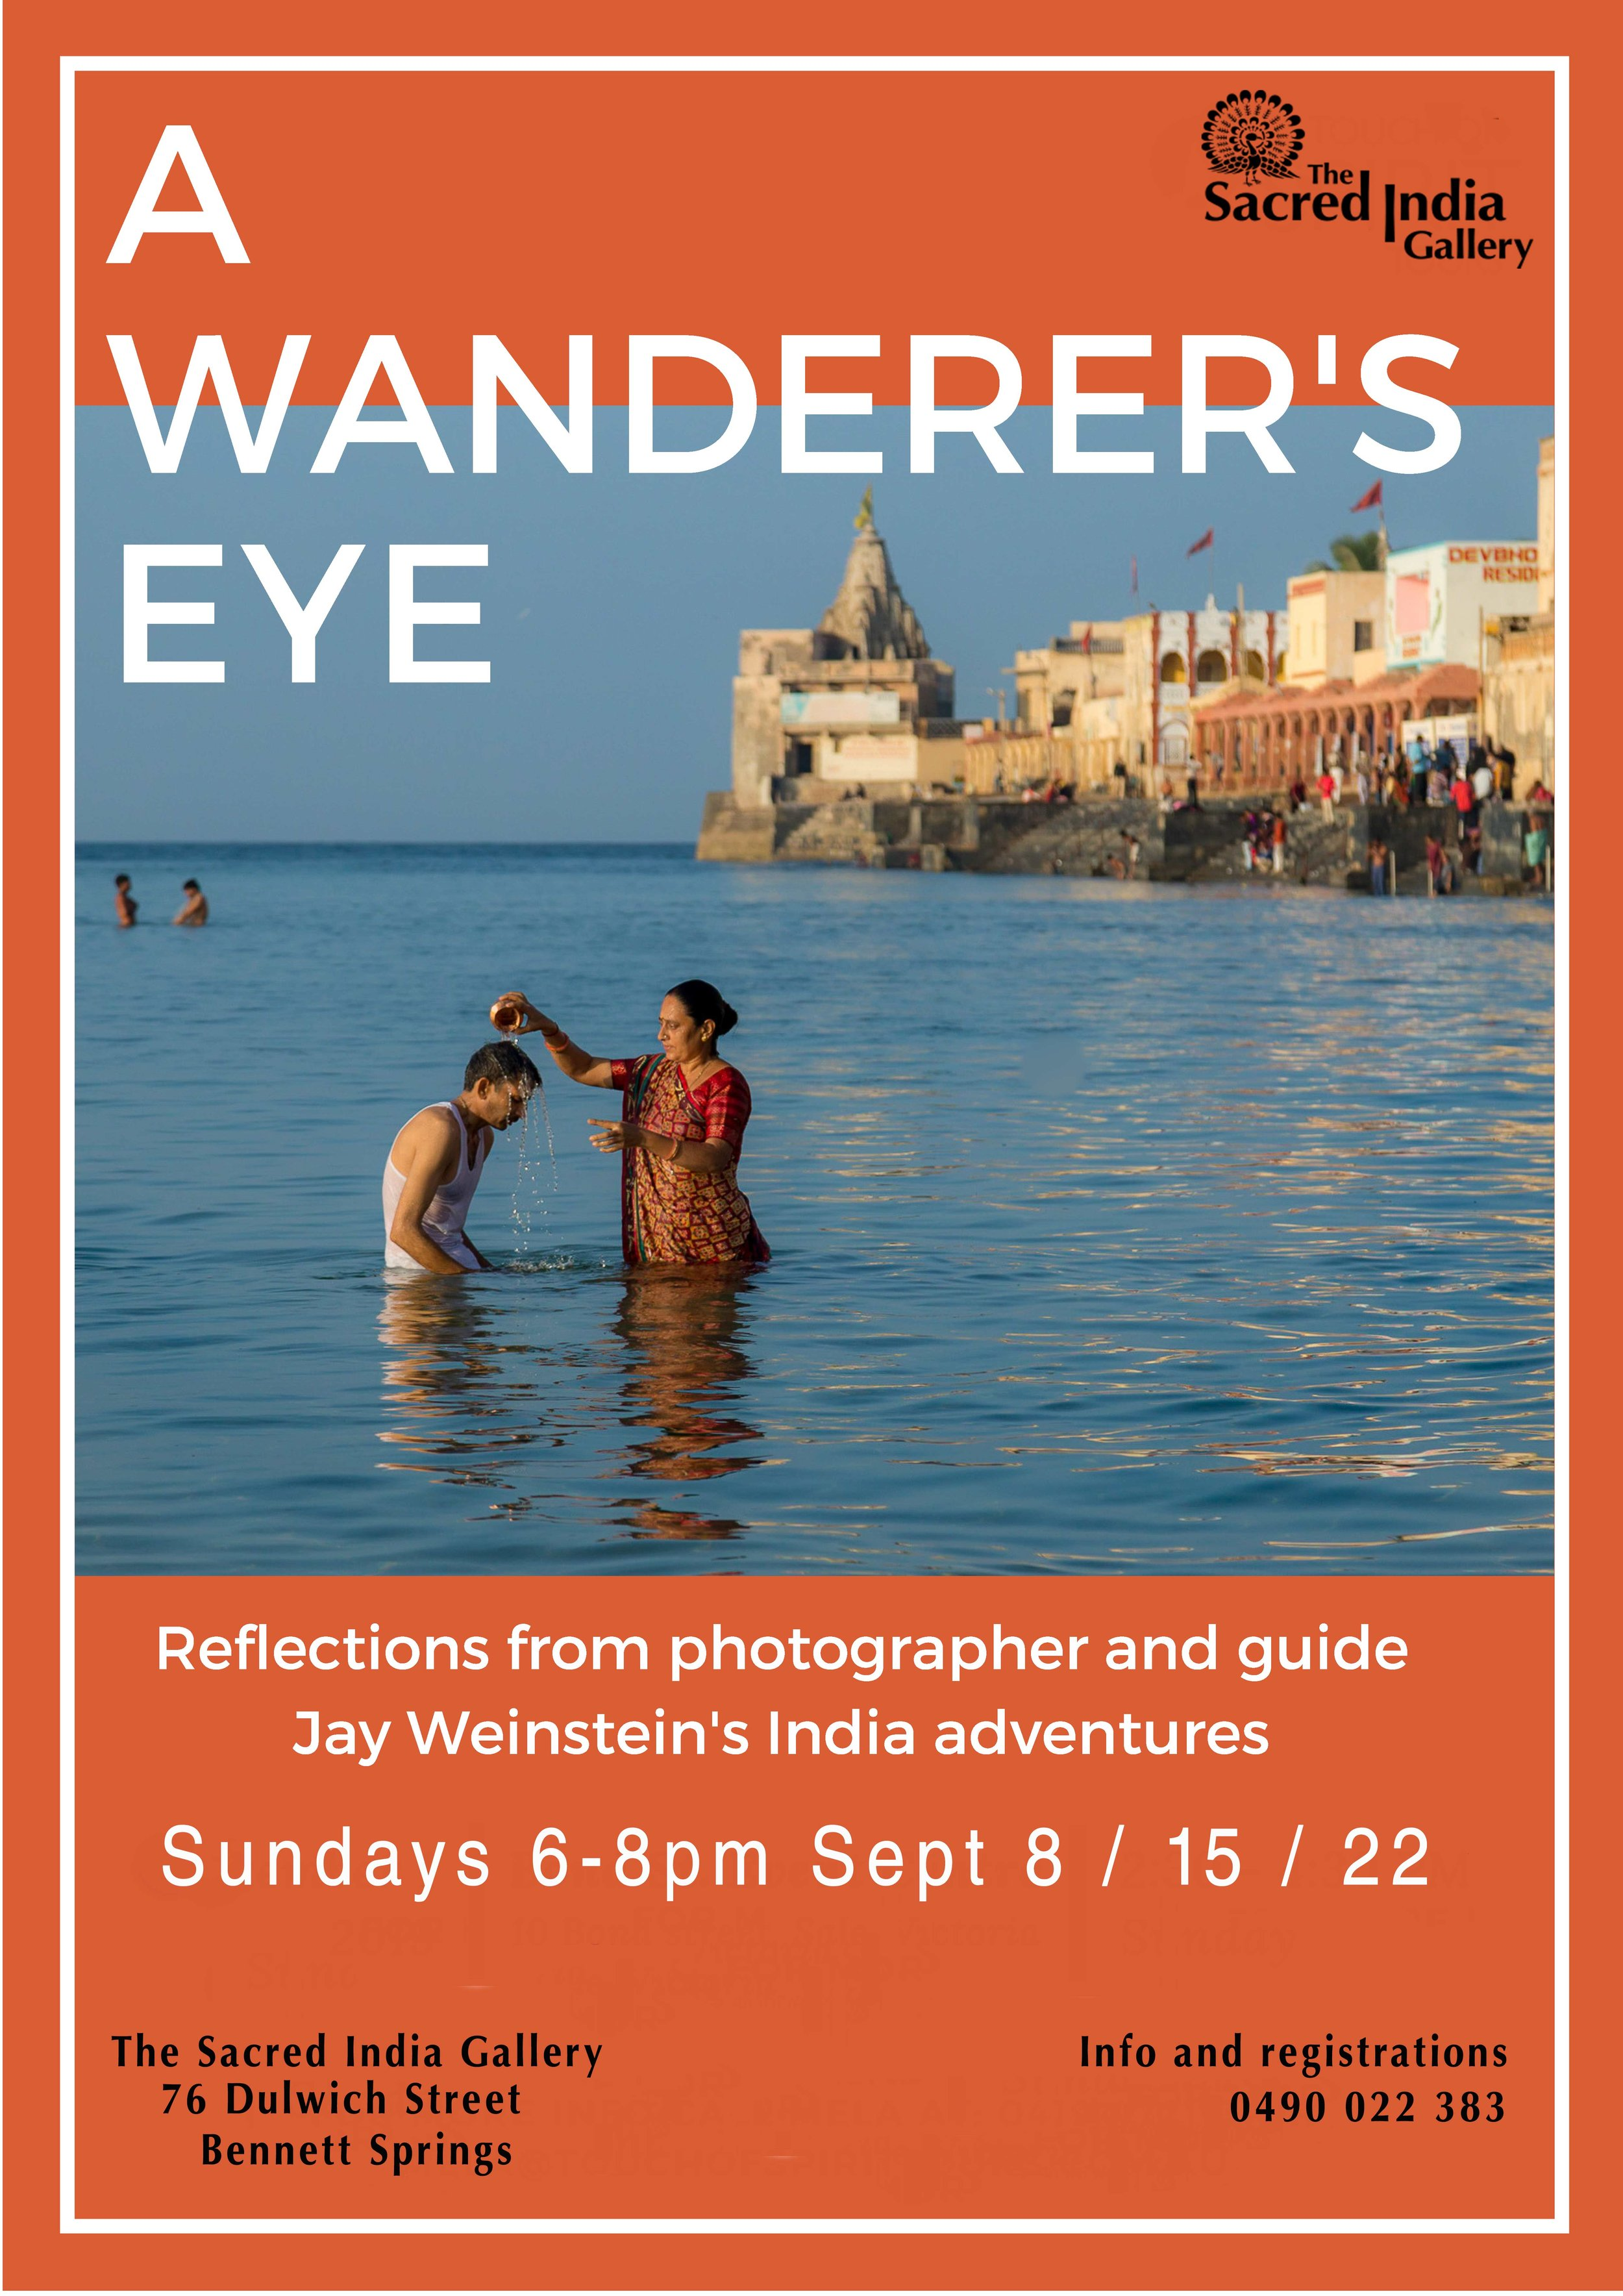 A Wanderer's Eye - Jay Weinstein's India Adventures - He's back! Exciting New Images! Travel Photographer and Tour Guide Jay Weinstein returns to Perth with incredible images and stories from his recent India adventures.These events are free to attend and will conclude with a vegetarian supper.There are just the three evenings available at Sacred India, and places are limited, so don't be disappointed! Register now!Info & Registrations - Shree 0490 022 383